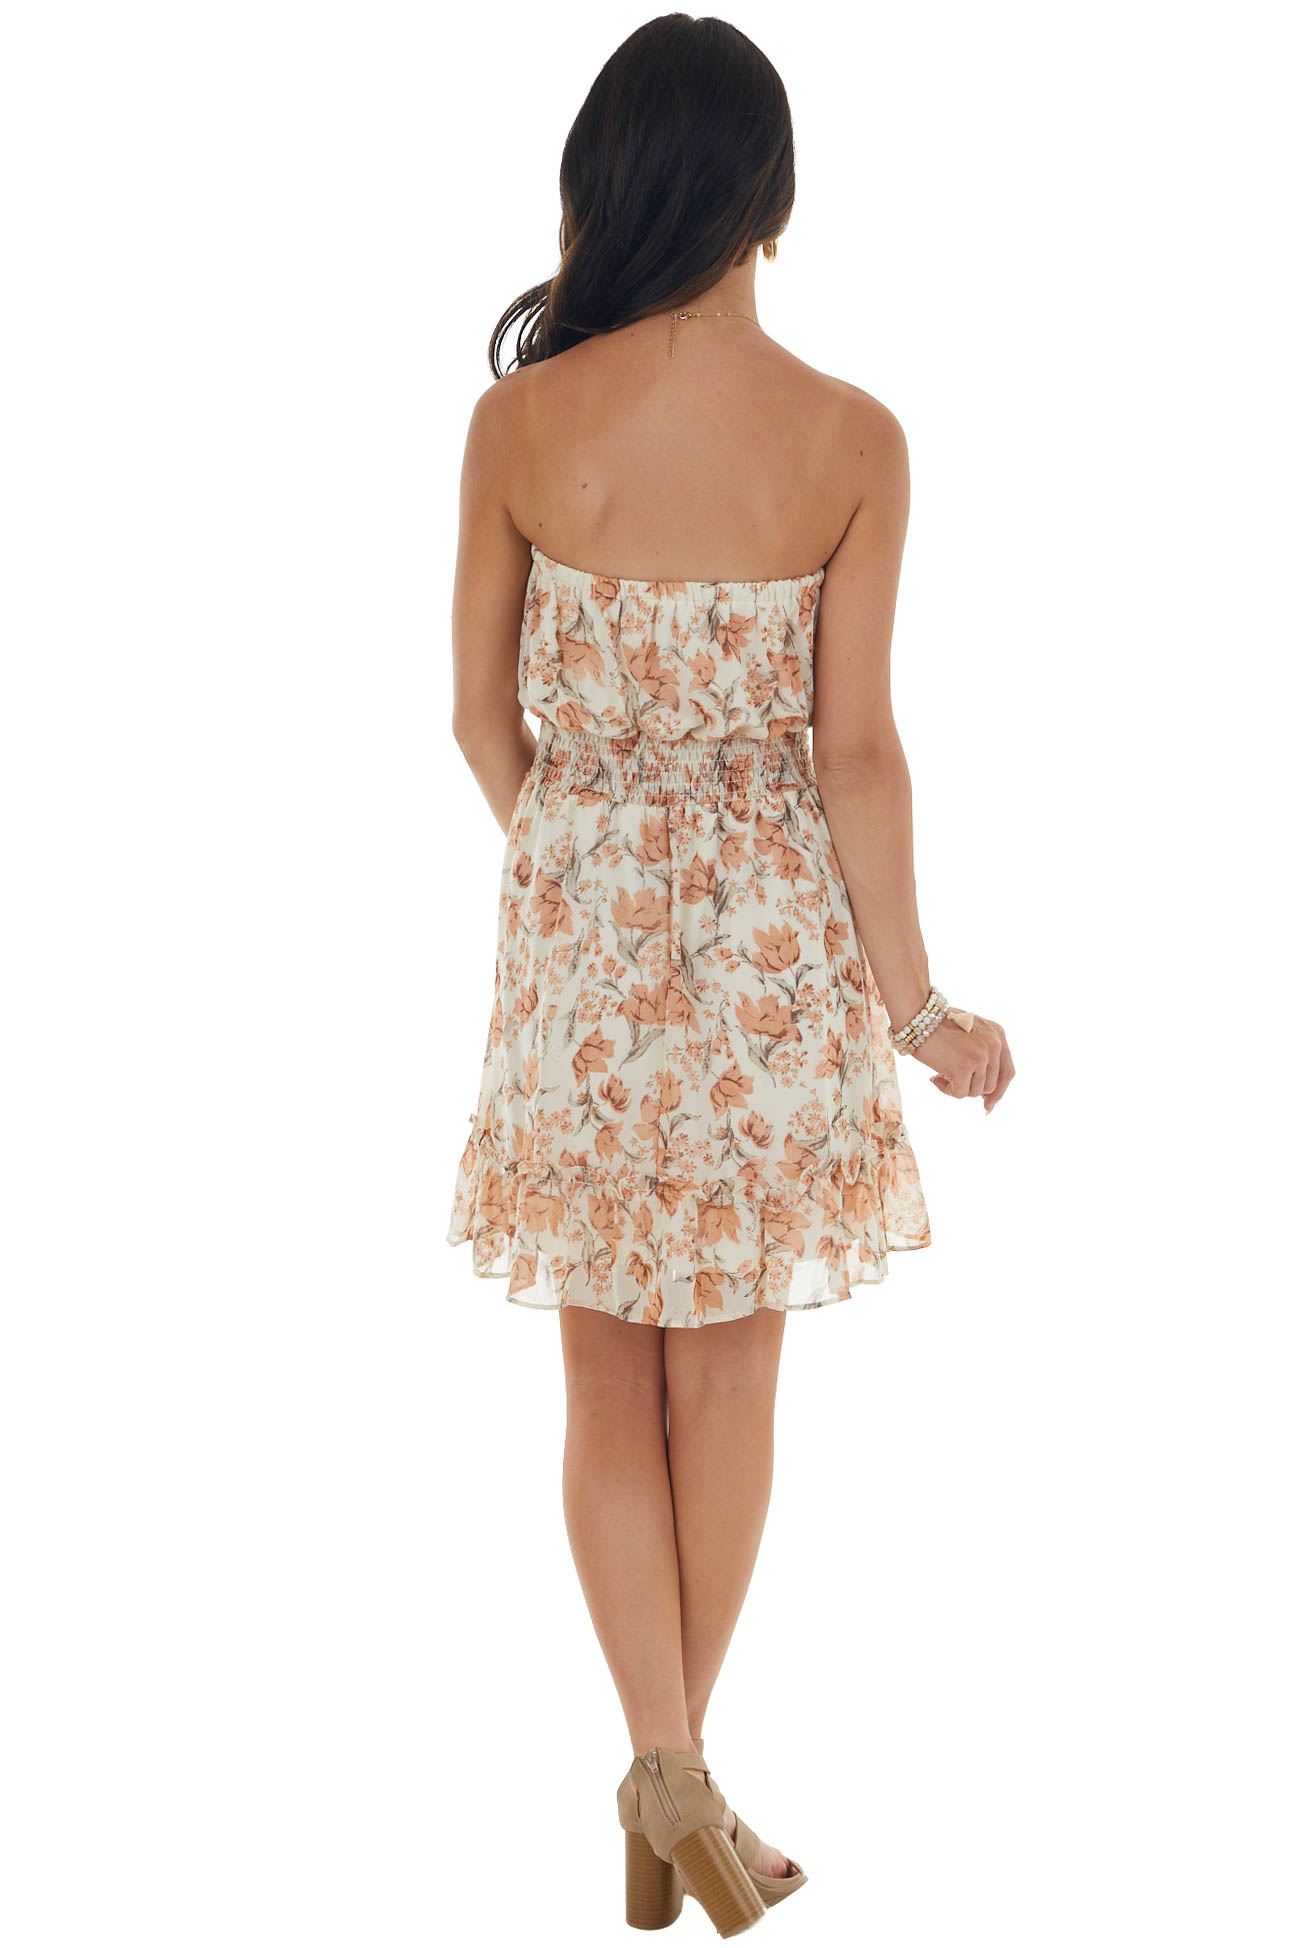 Champagne Floral Strapless Woven Short Dress